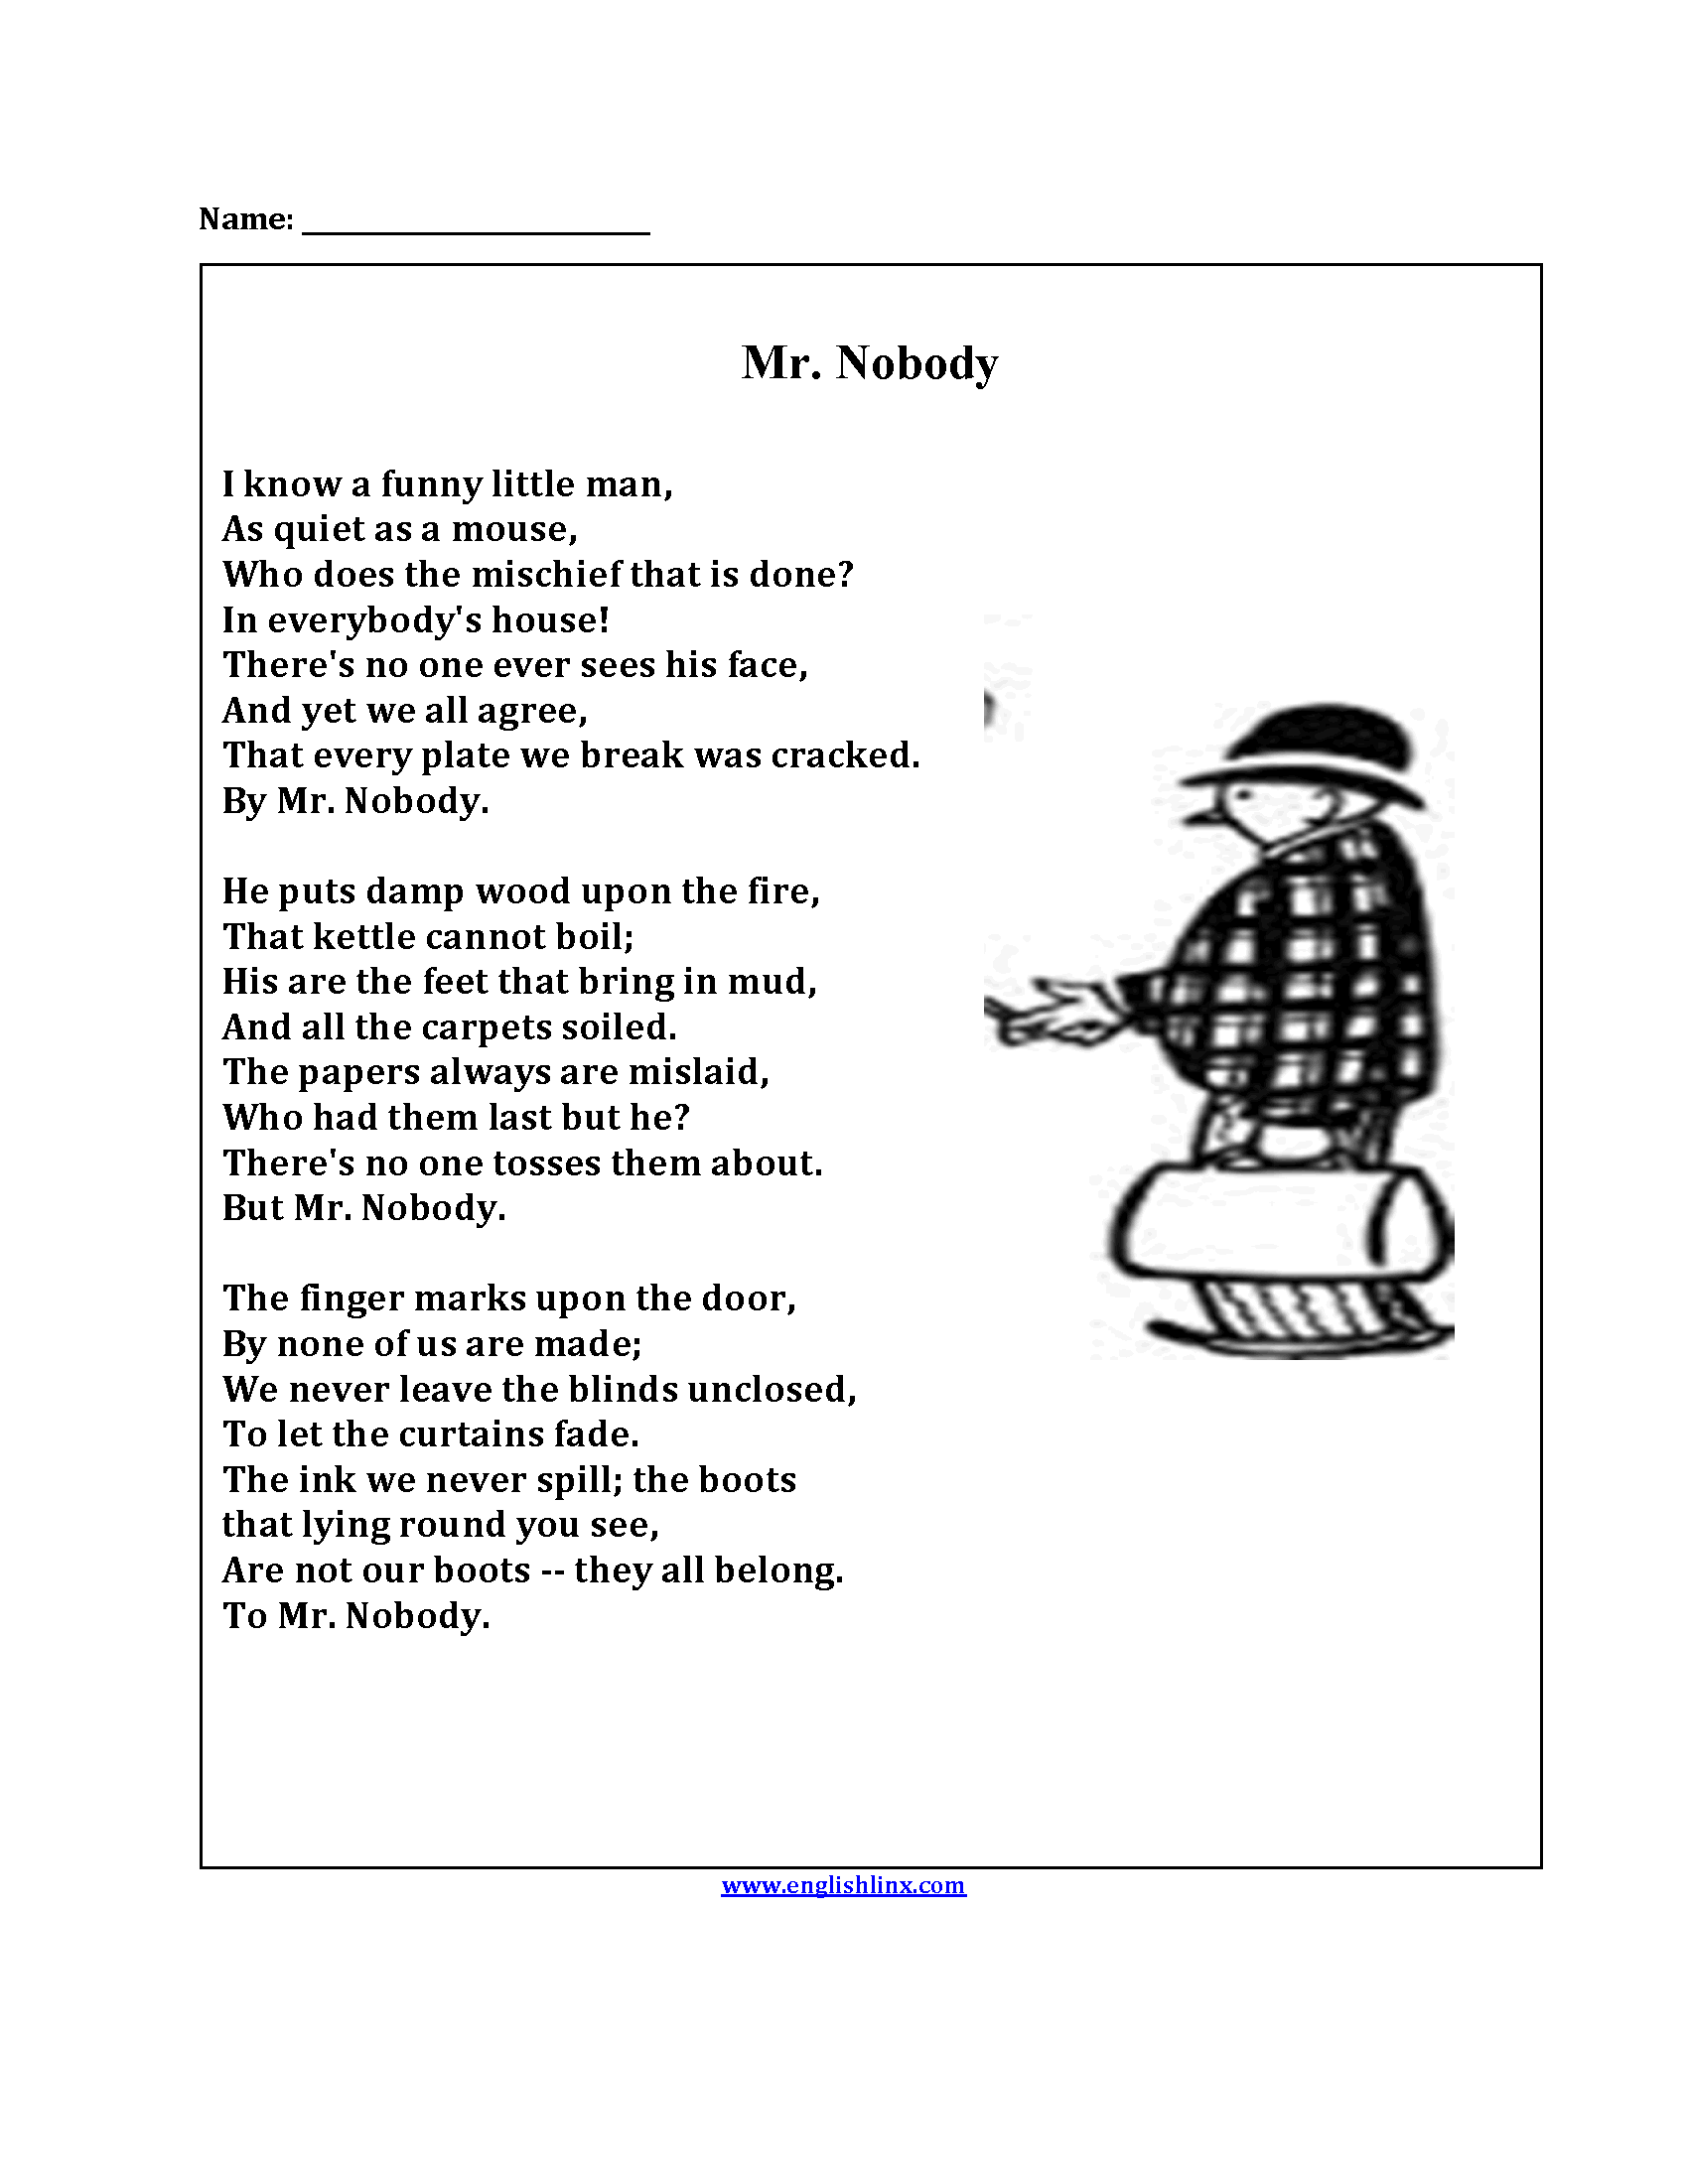 mr nobody poetry worksheets poetry worksheets poetry. Black Bedroom Furniture Sets. Home Design Ideas